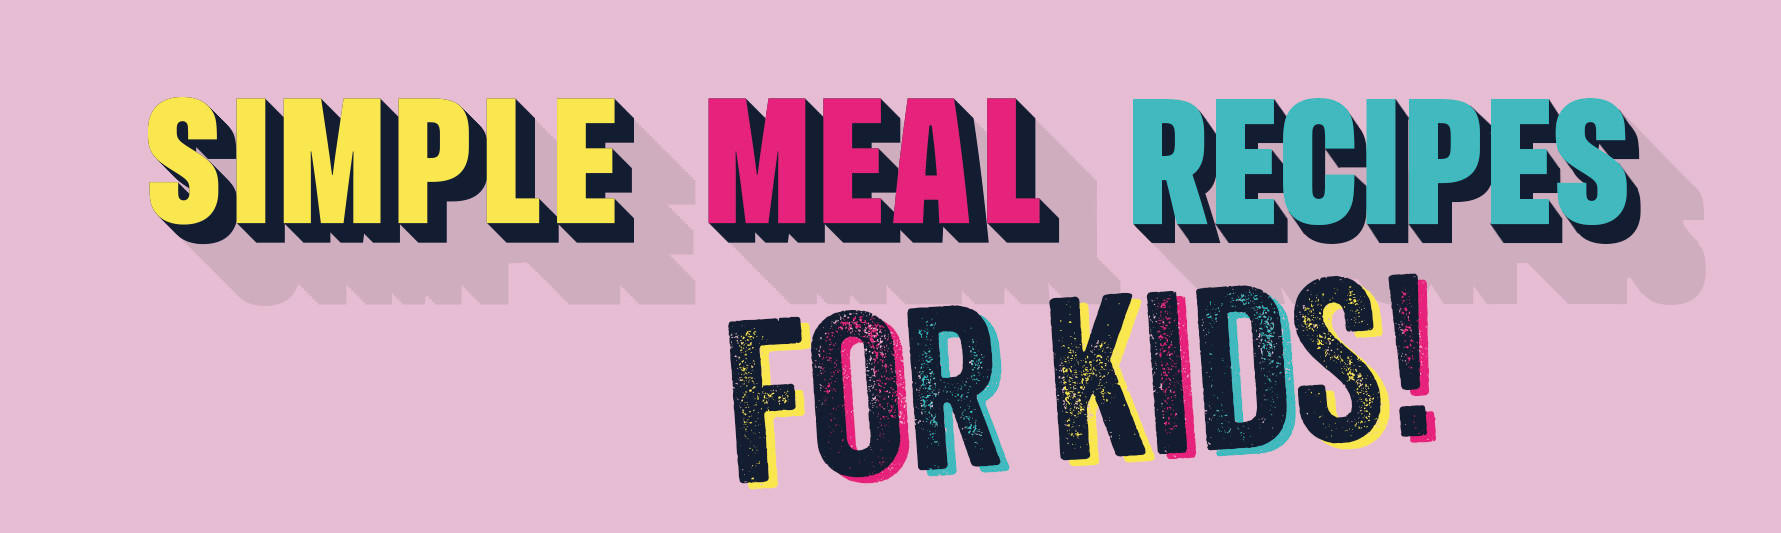 simple meal soultions for kids